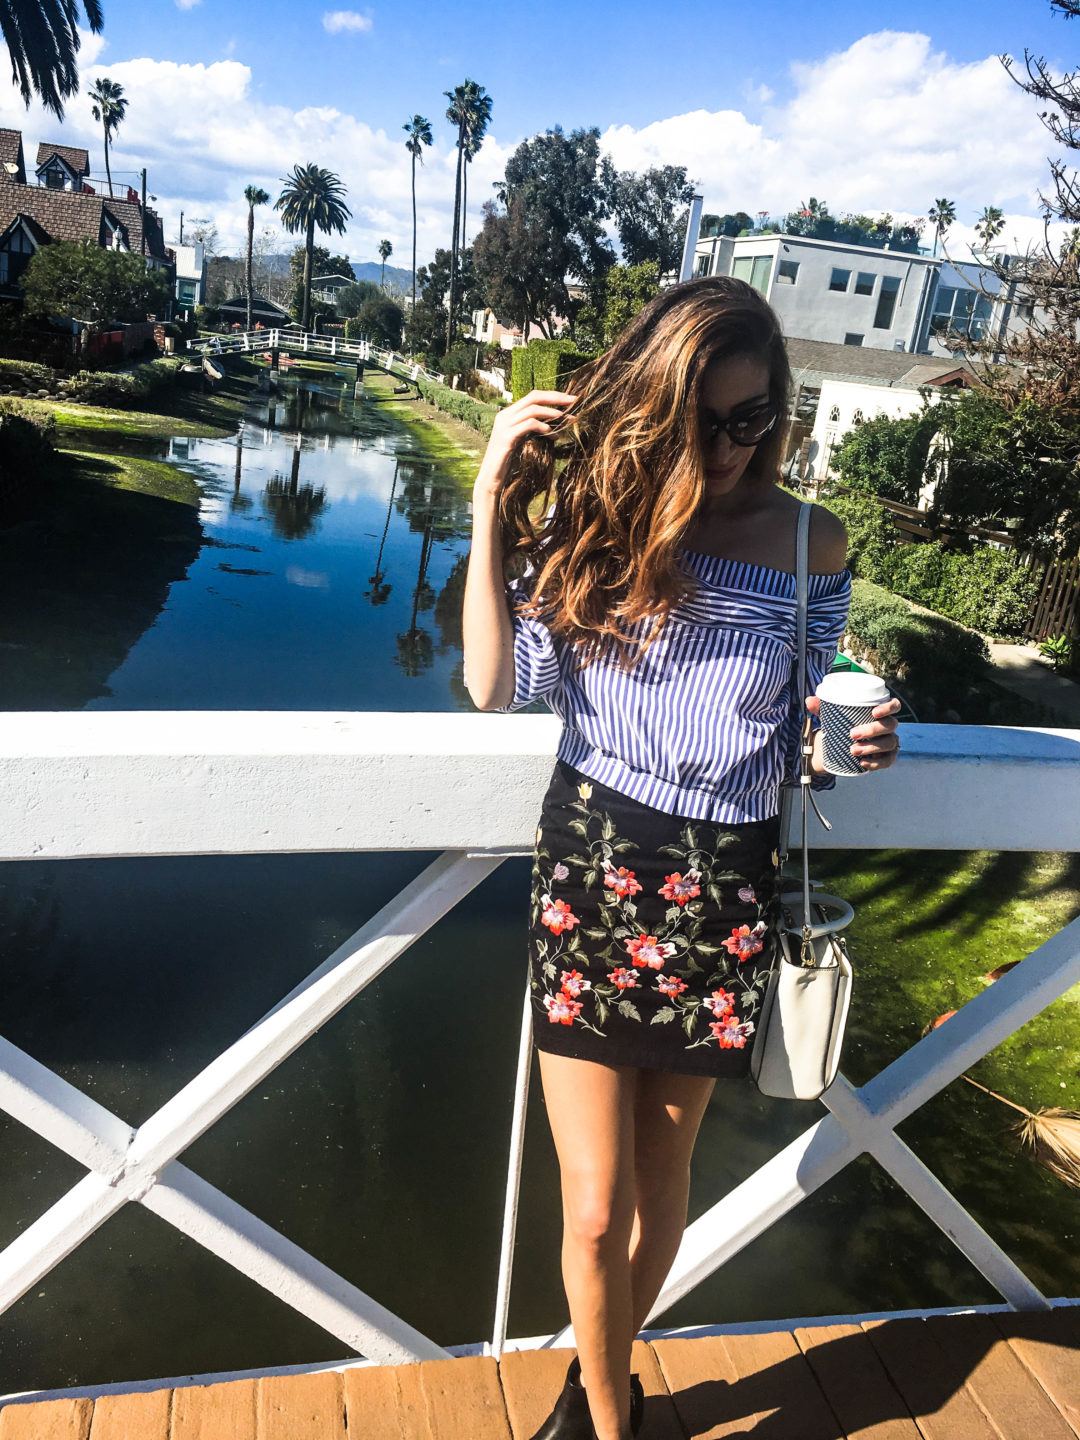 Photo of Venice Canals